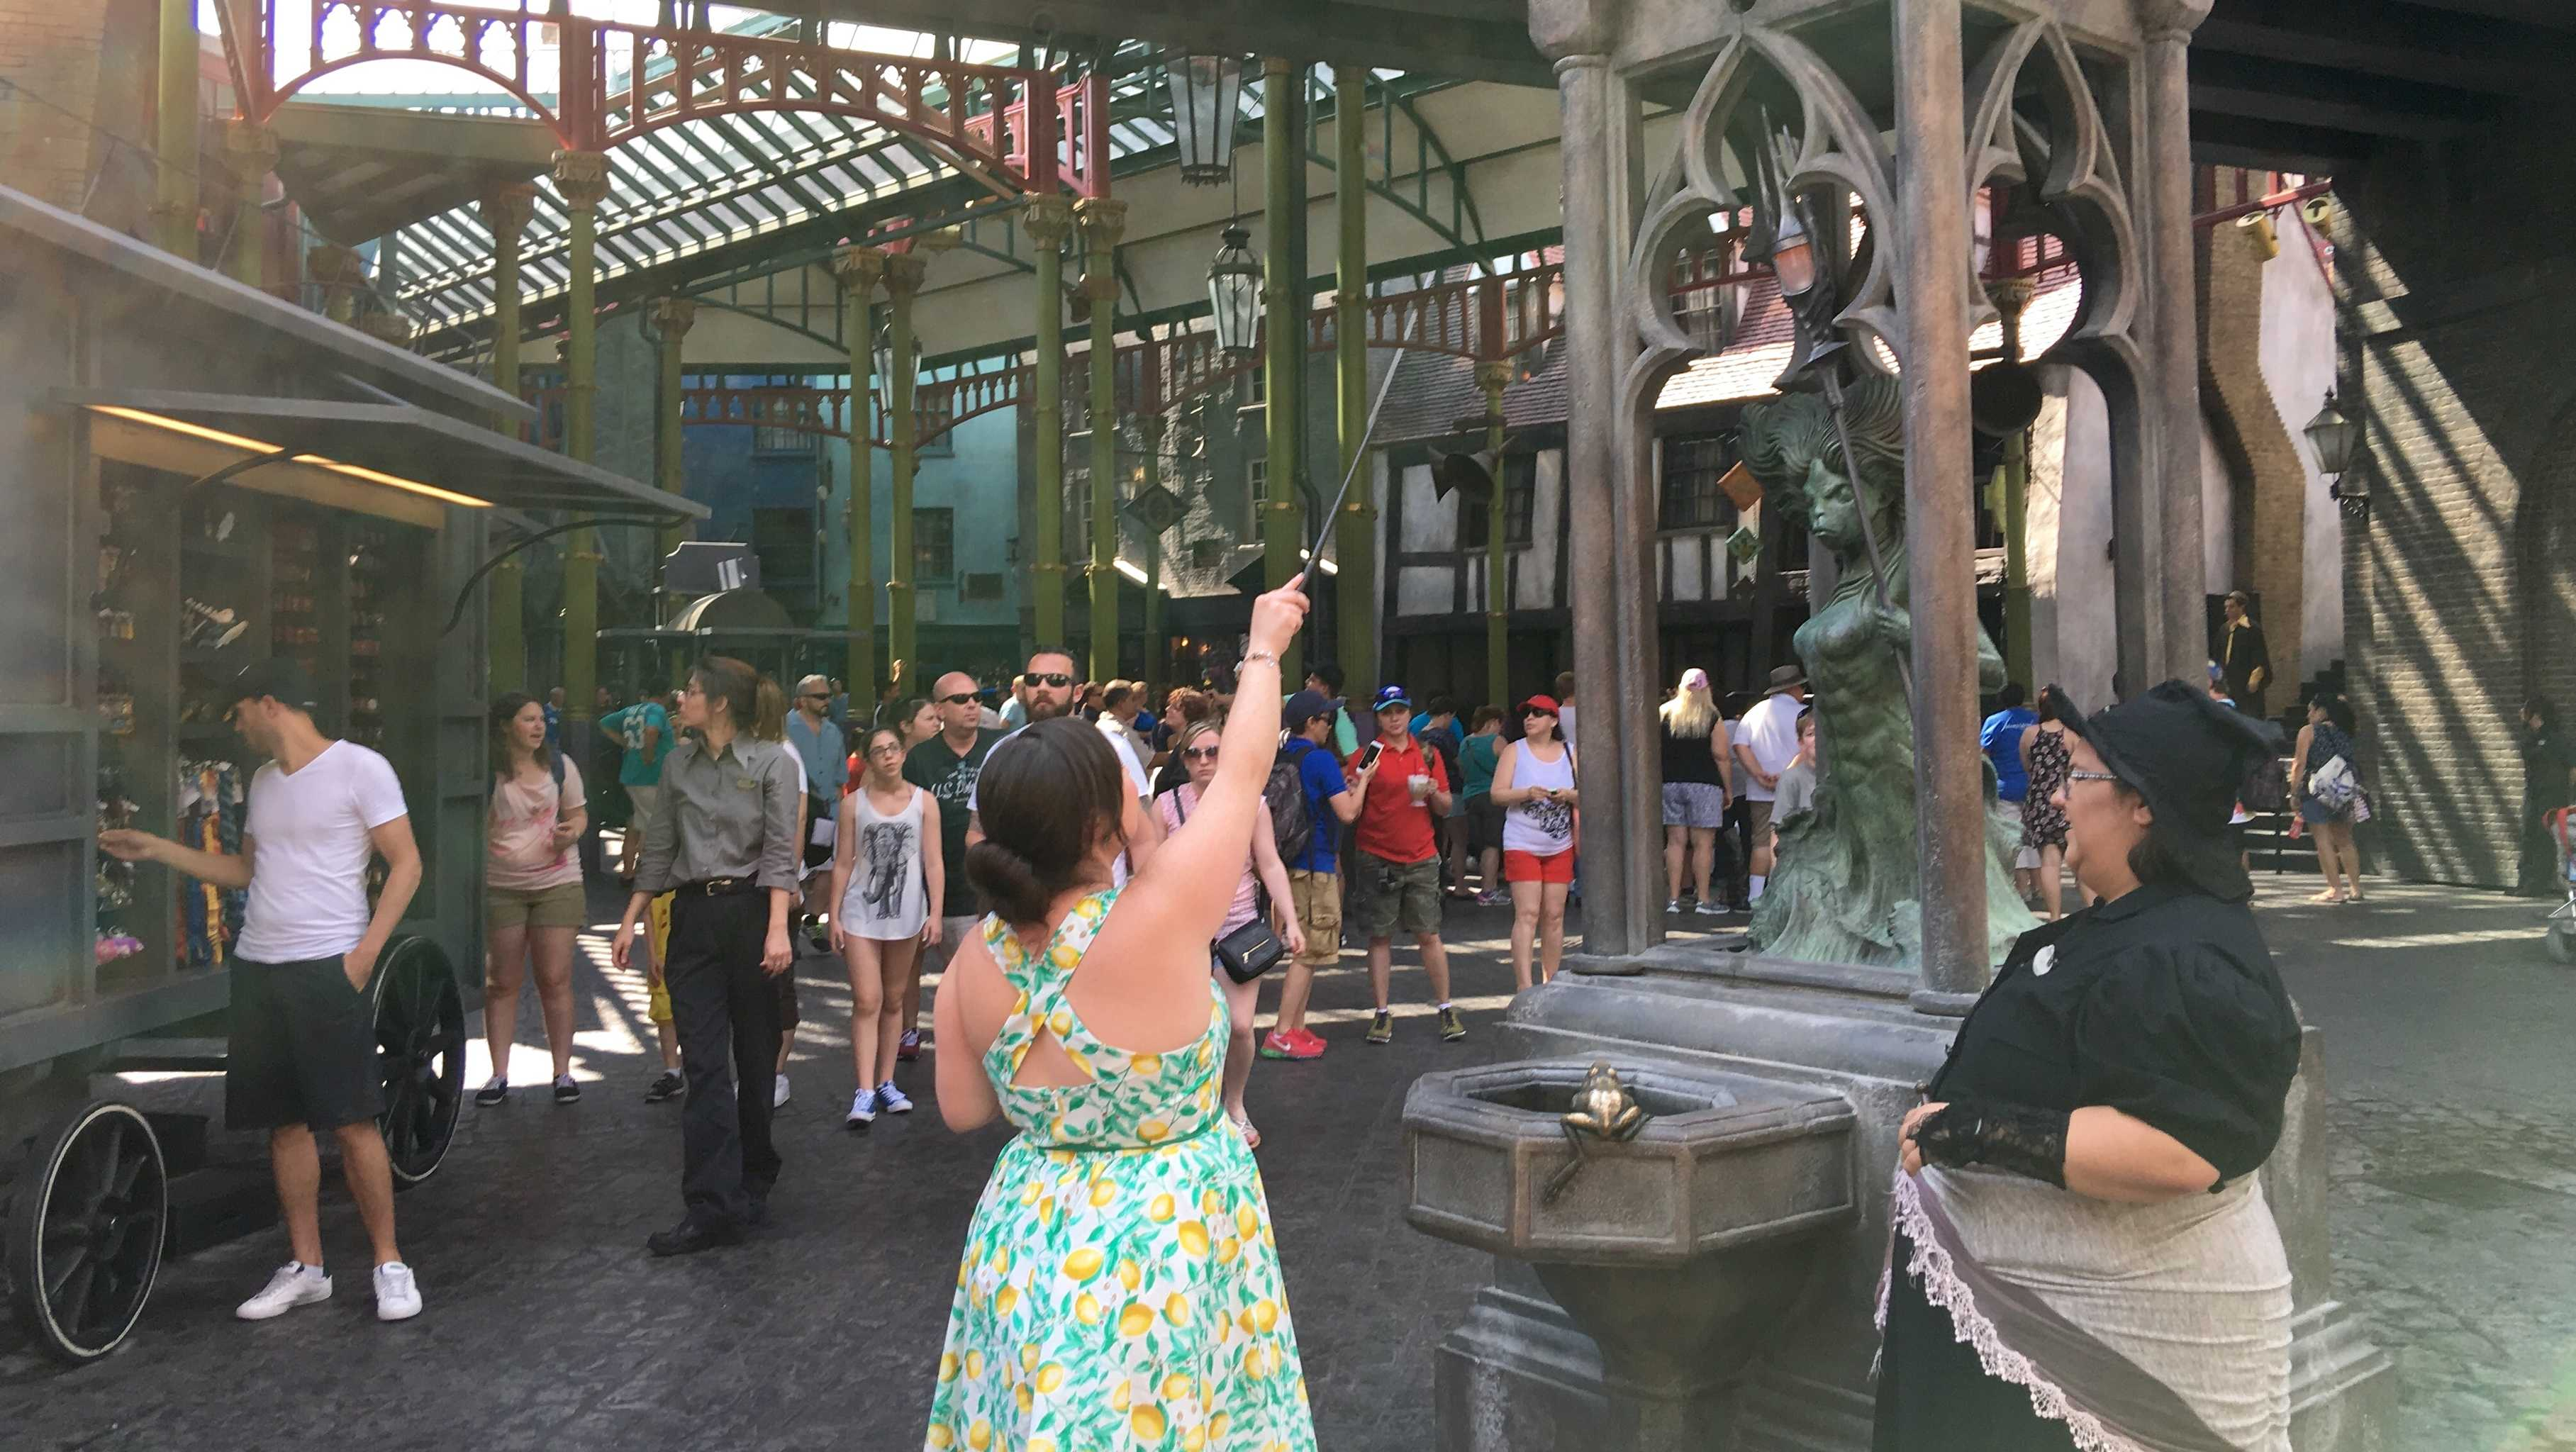 Casting Spells in Diagon Alley at Universal Studios Florida